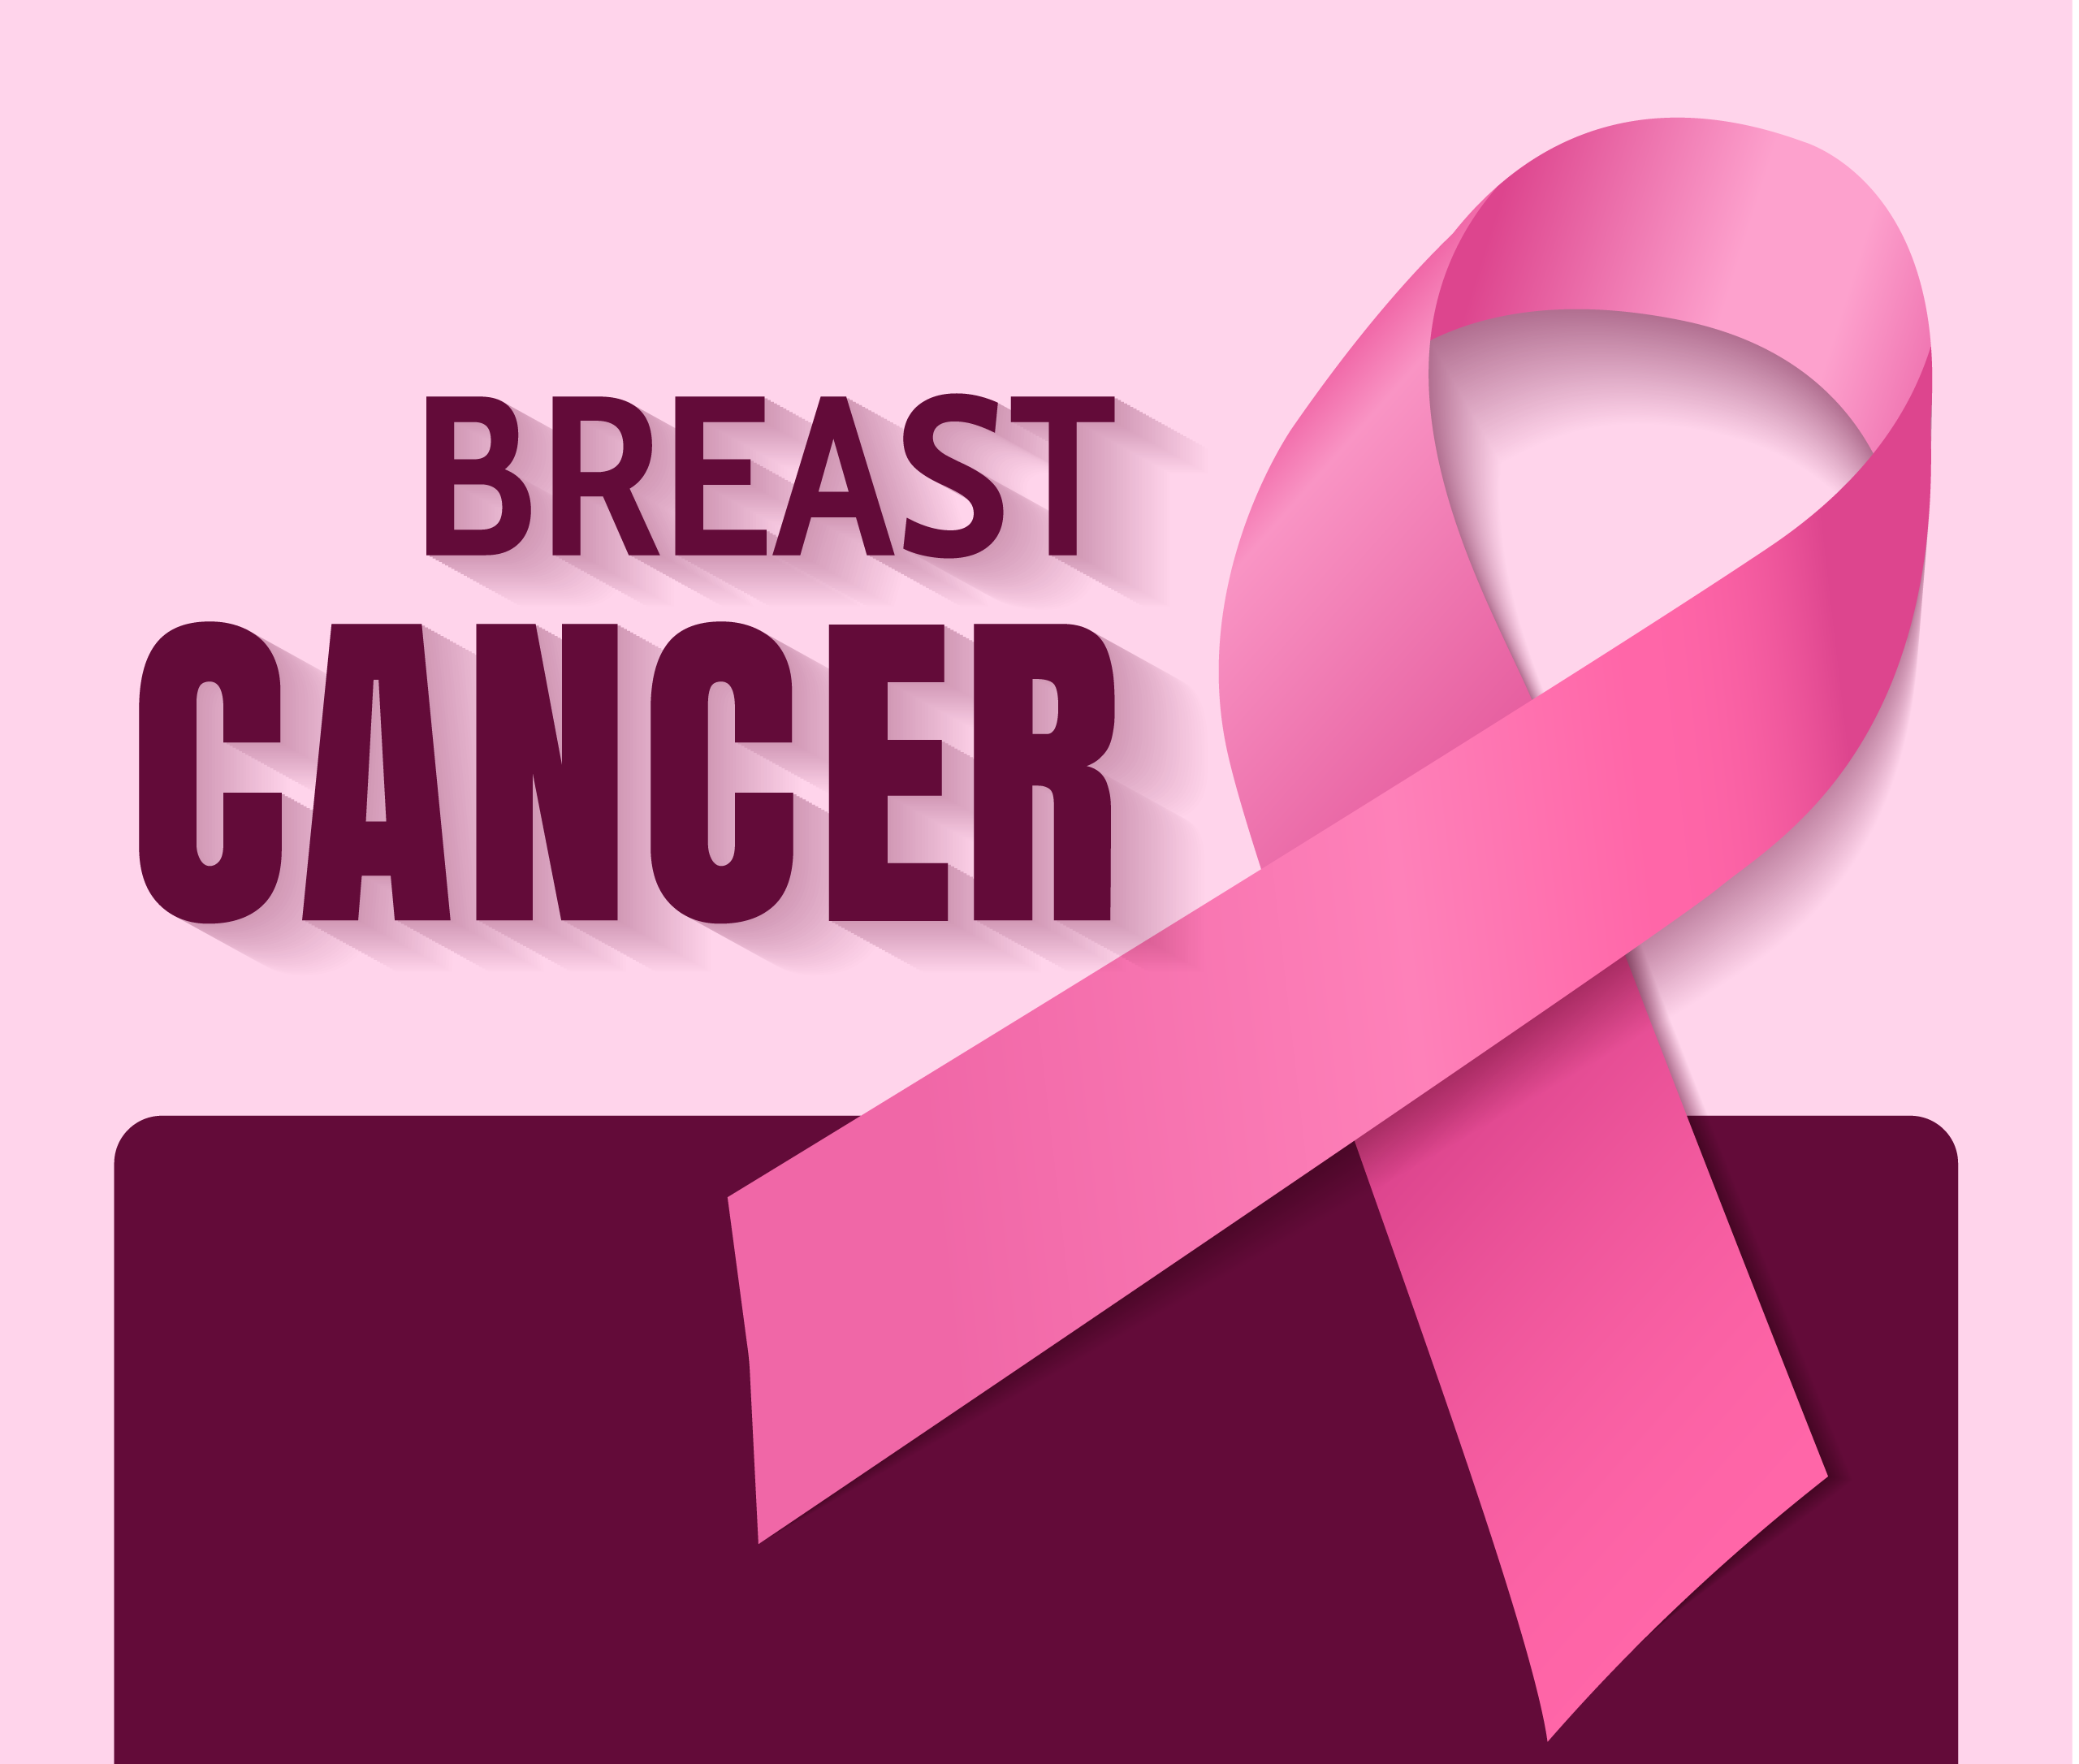 Breast Cancer Awareness | DECALO Weightloss, Wellness and Pain Mngt.